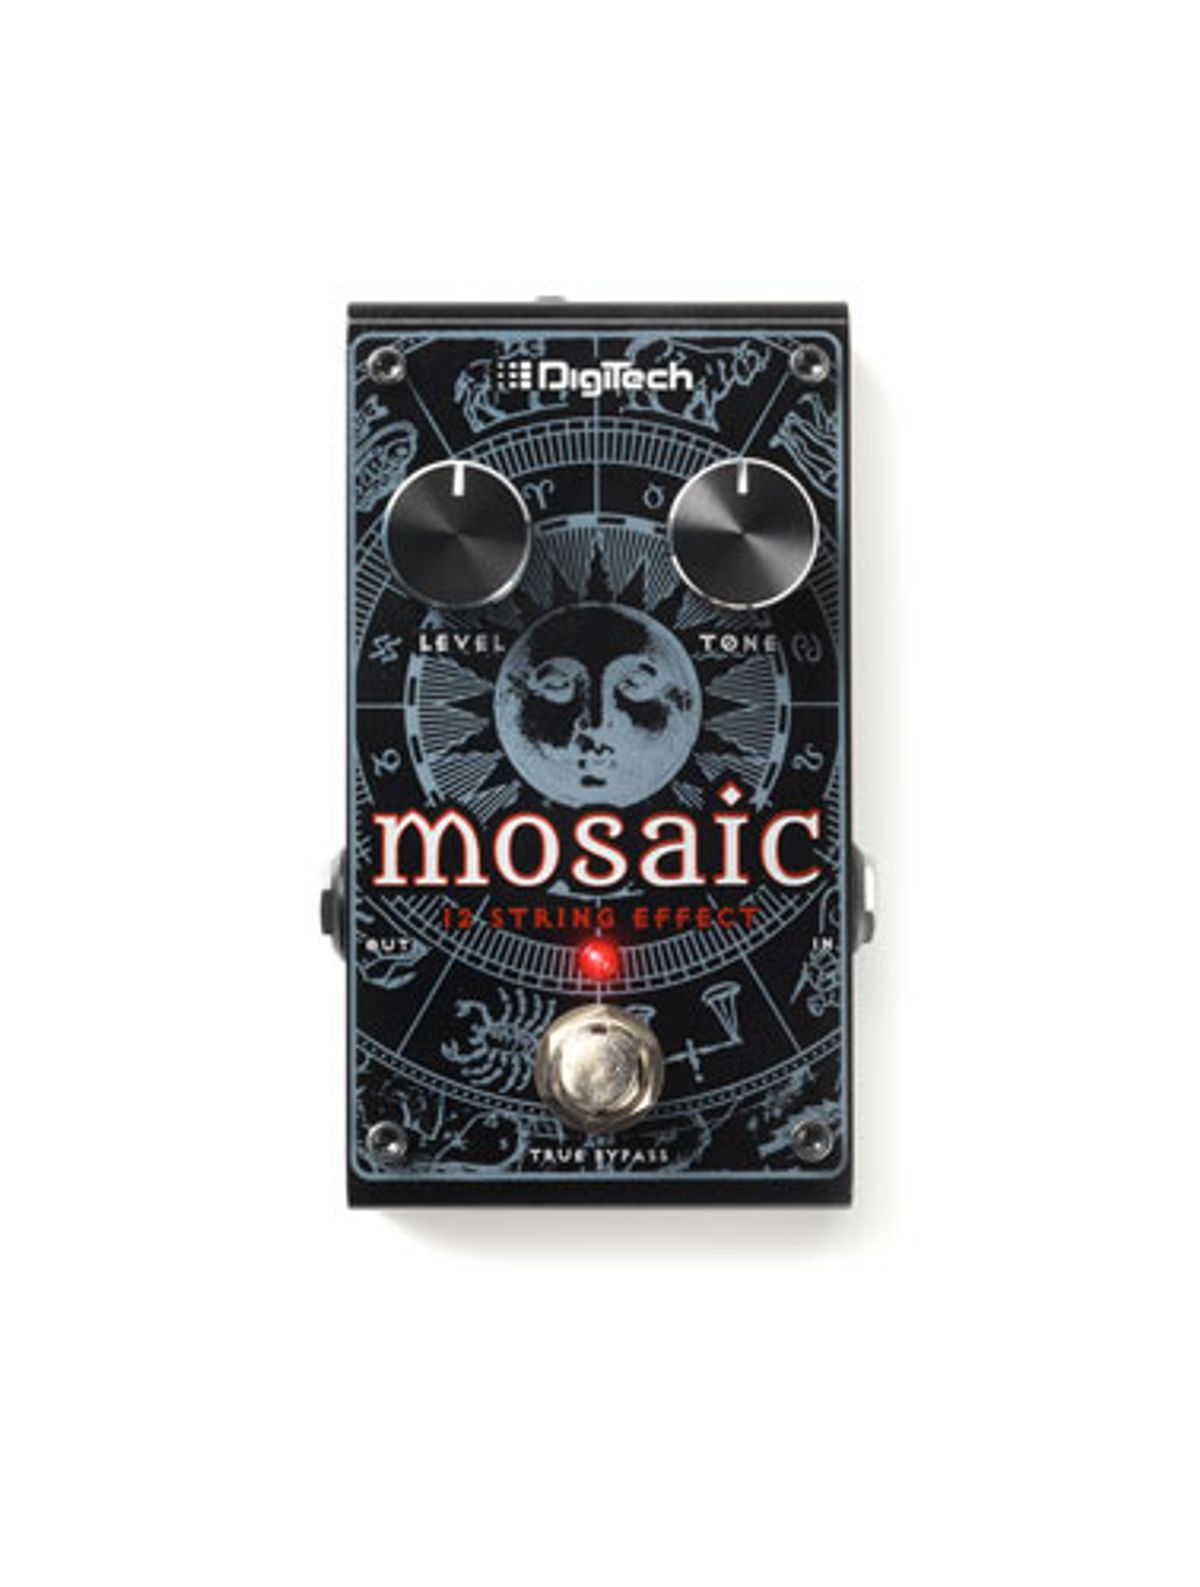 DigiTech Releases the Mosaic Polyphonic 12-String Effect Pedal